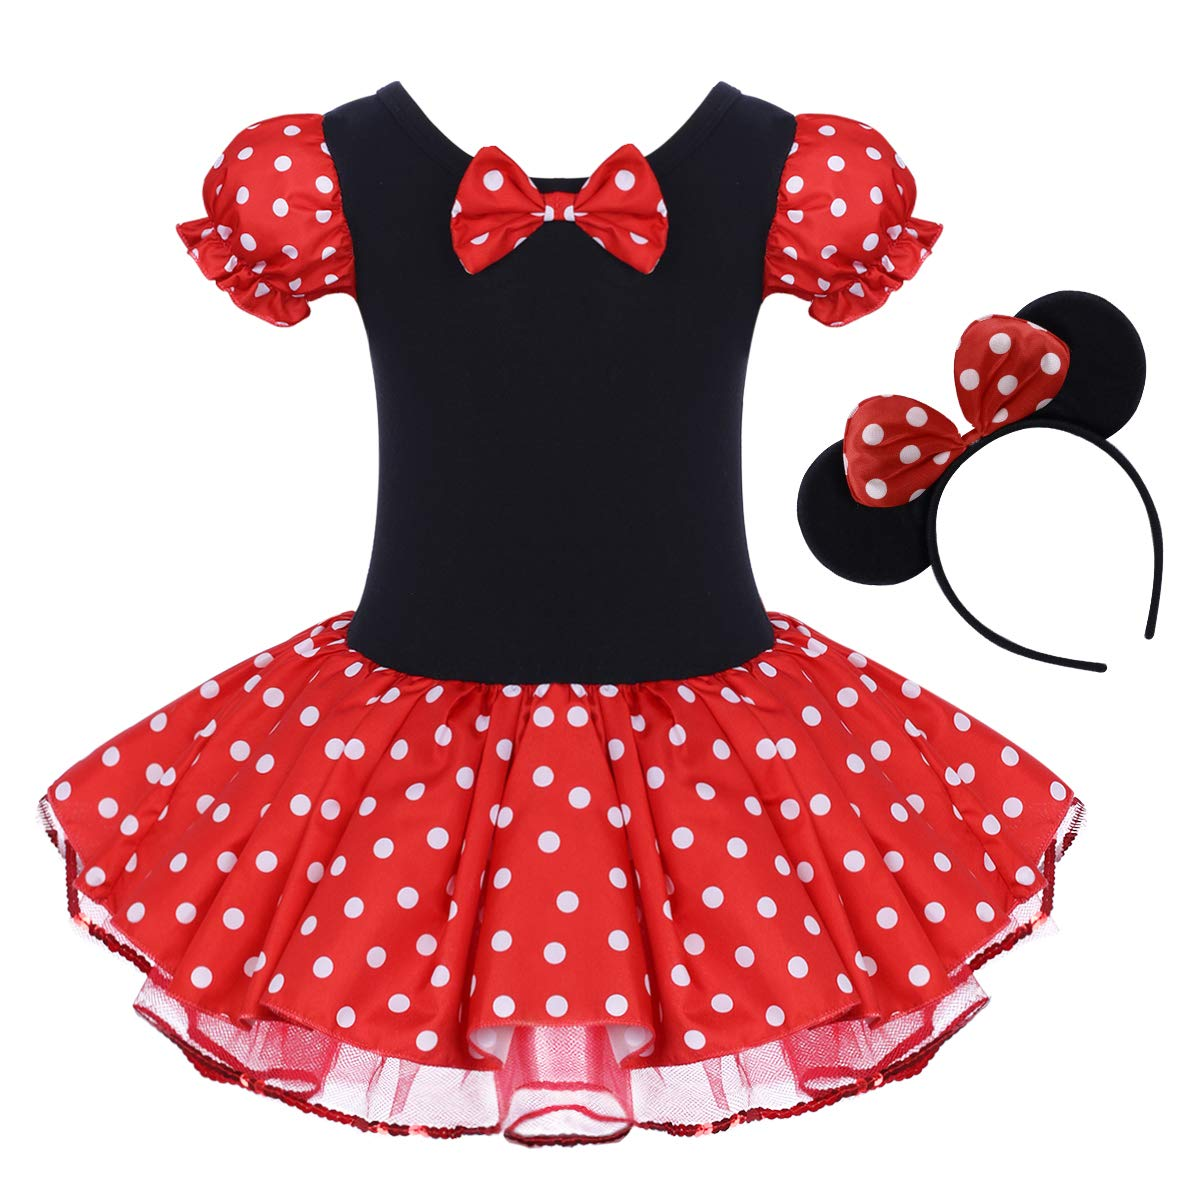 Toddler Girls Polka Dots Princess Party Fancy Costumes Wedding Christening Birthday Flower Tutu Dress up Baby Infant Kids Bowknot Dancing Leotard Carnival Gymnastic Cosplay Dresses Mouse Ear Headband